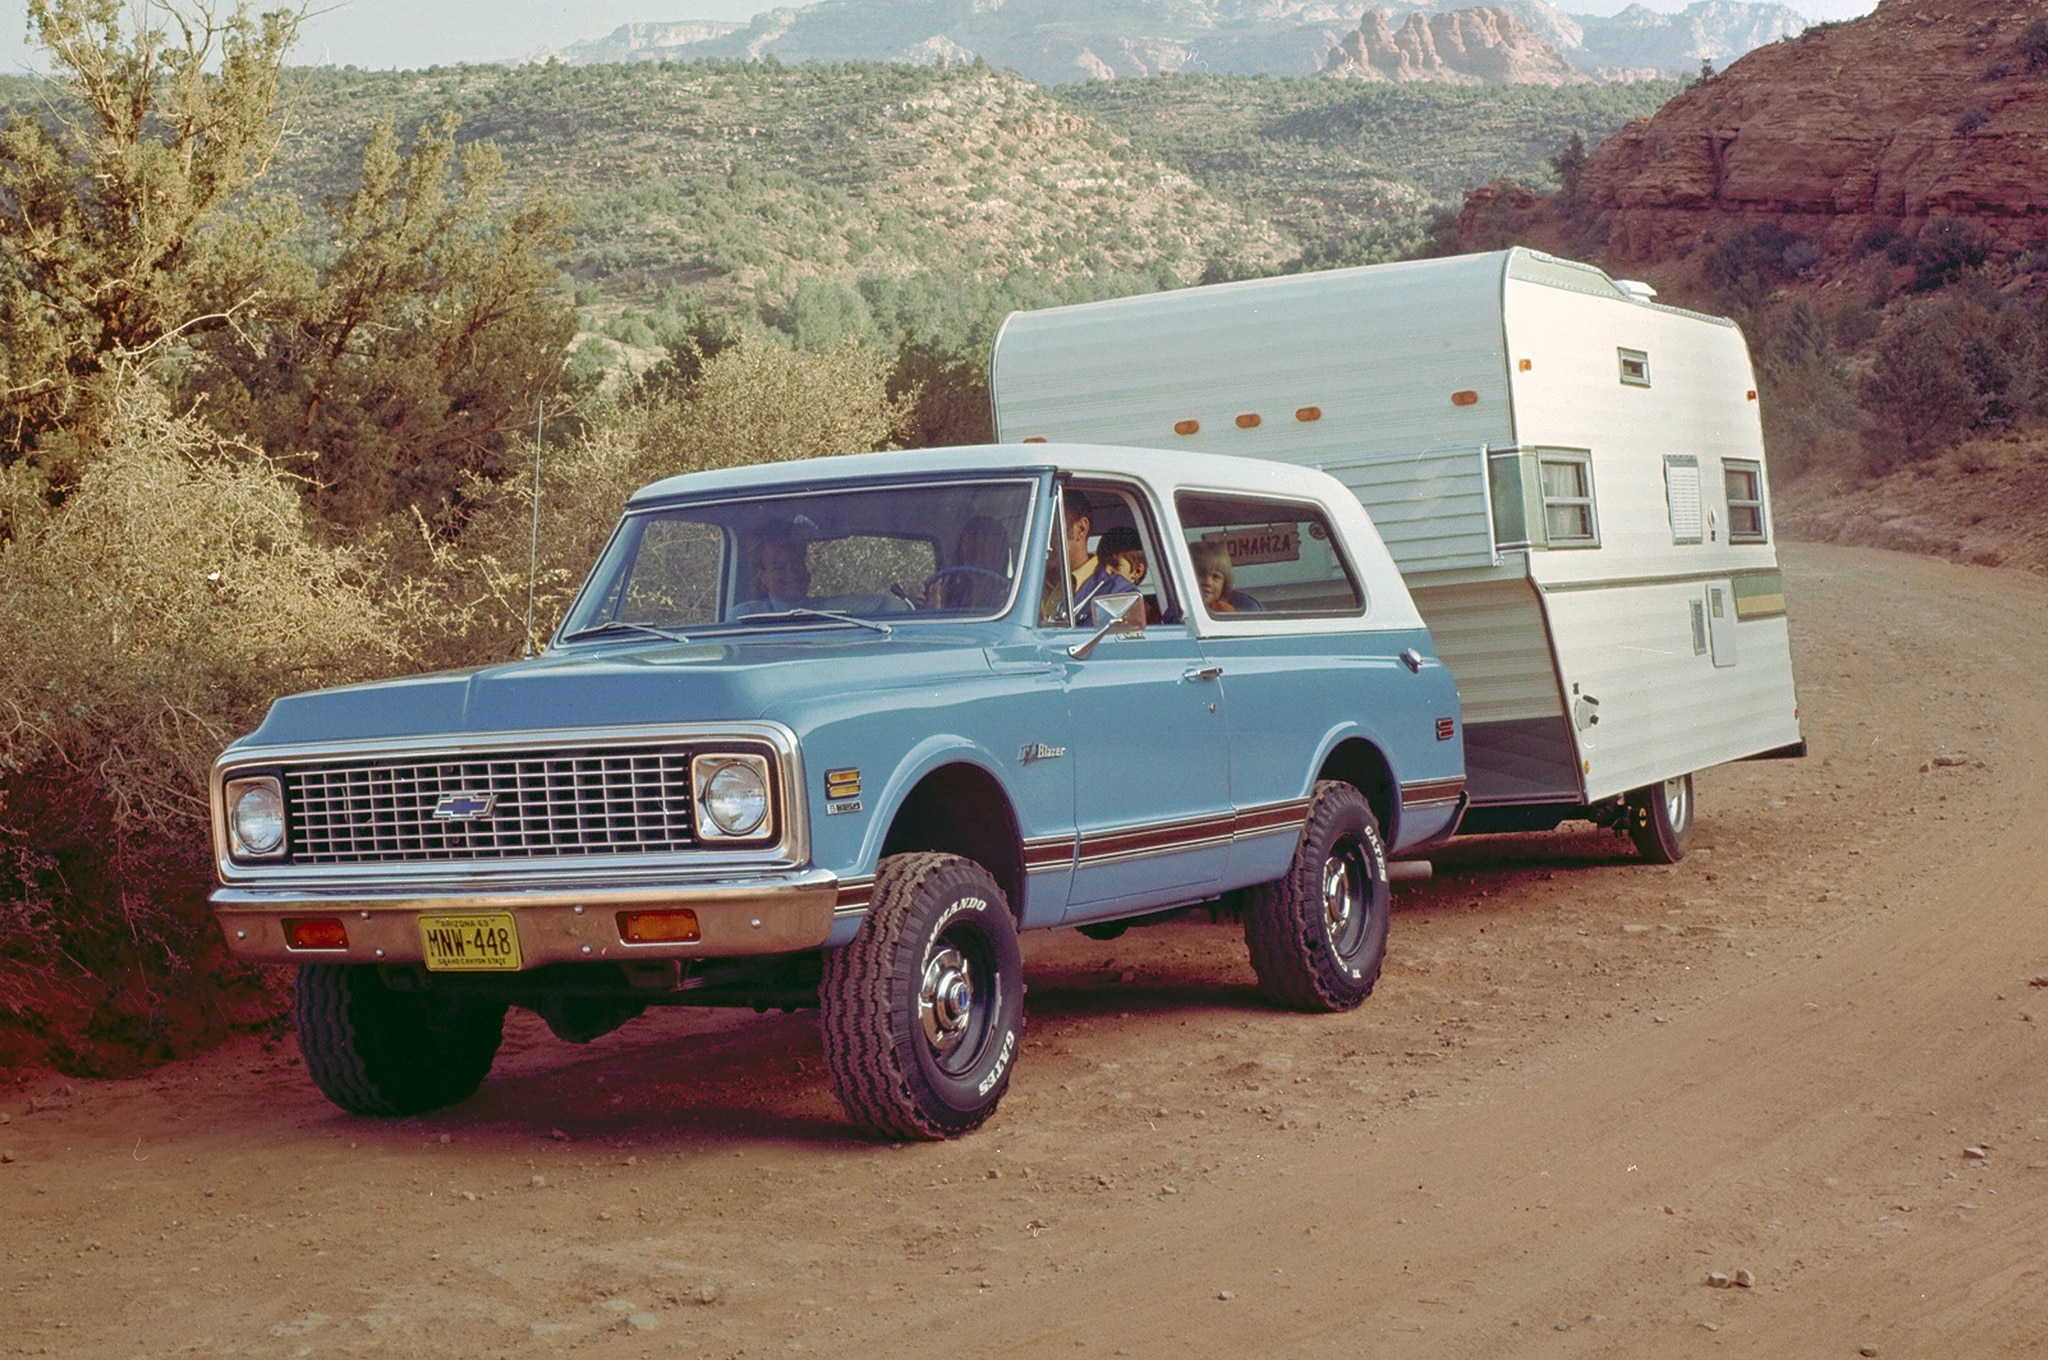 Everything You Want To Know About The Chevrolet Blazer Automobile Chevy Engine Description S 10